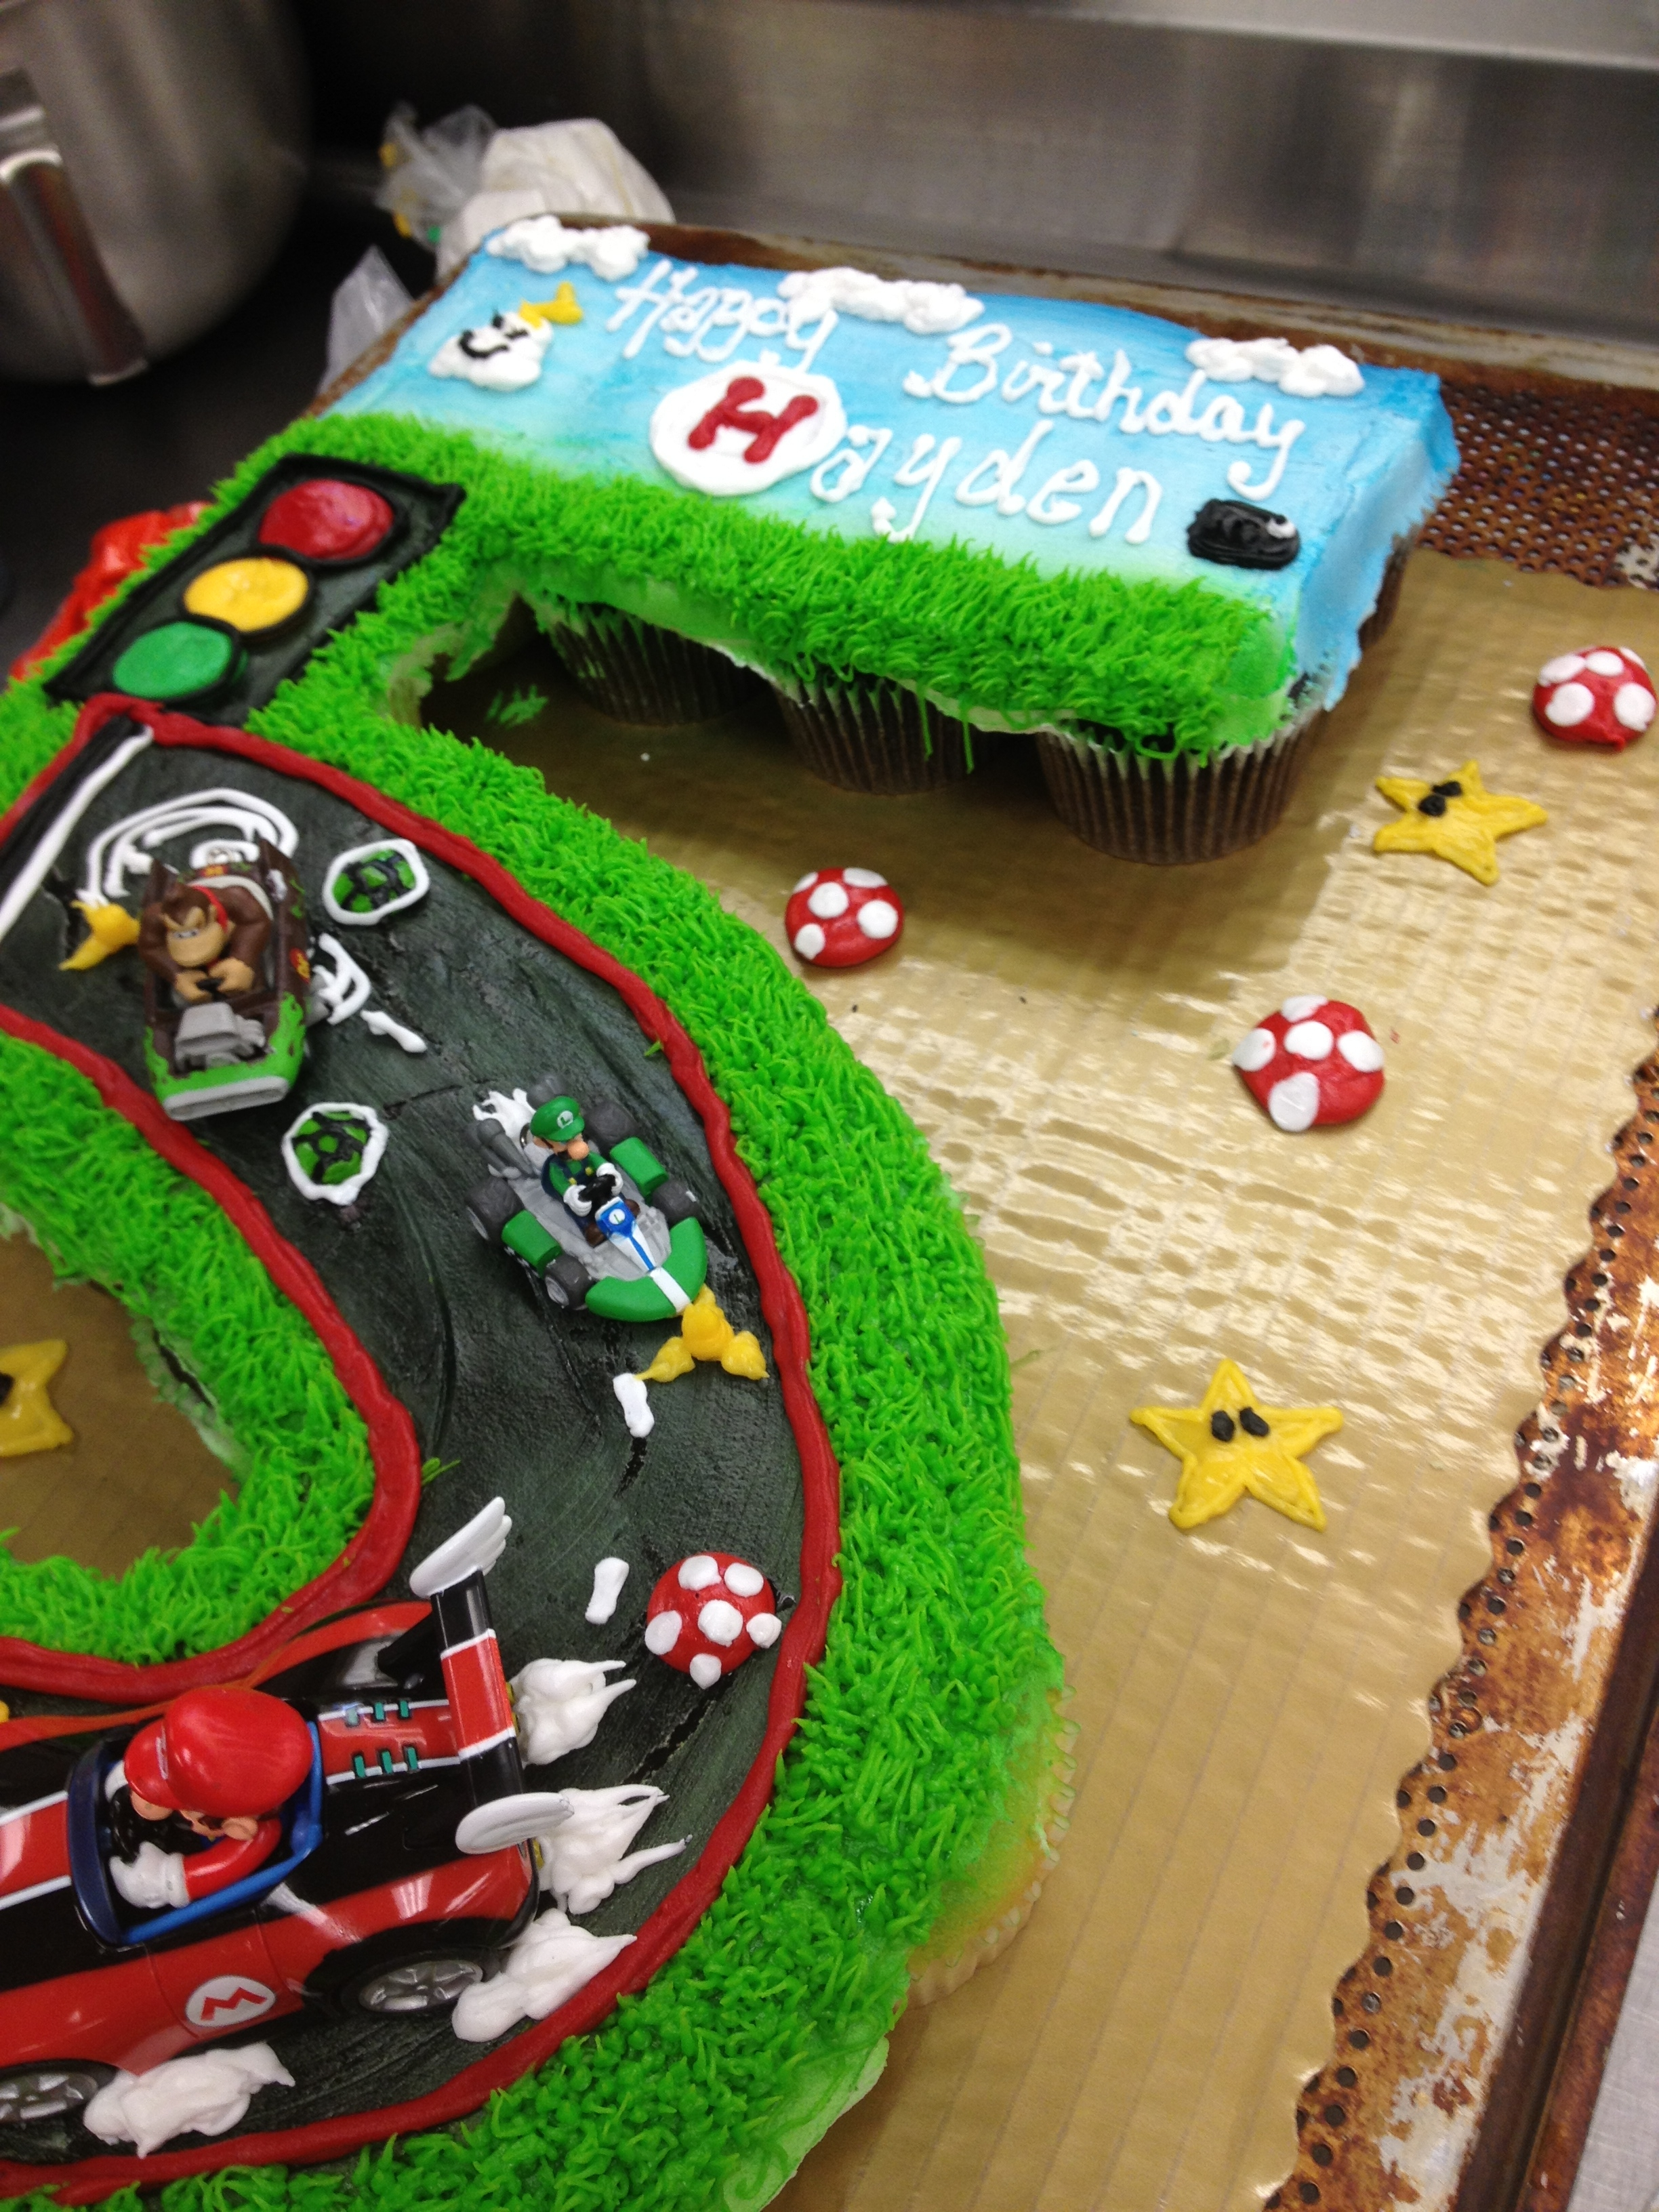 Swell Super Mario Bro Cake Shaped Into A Number 5 Cakecentral Com Personalised Birthday Cards Akebfashionlily Jamesorg